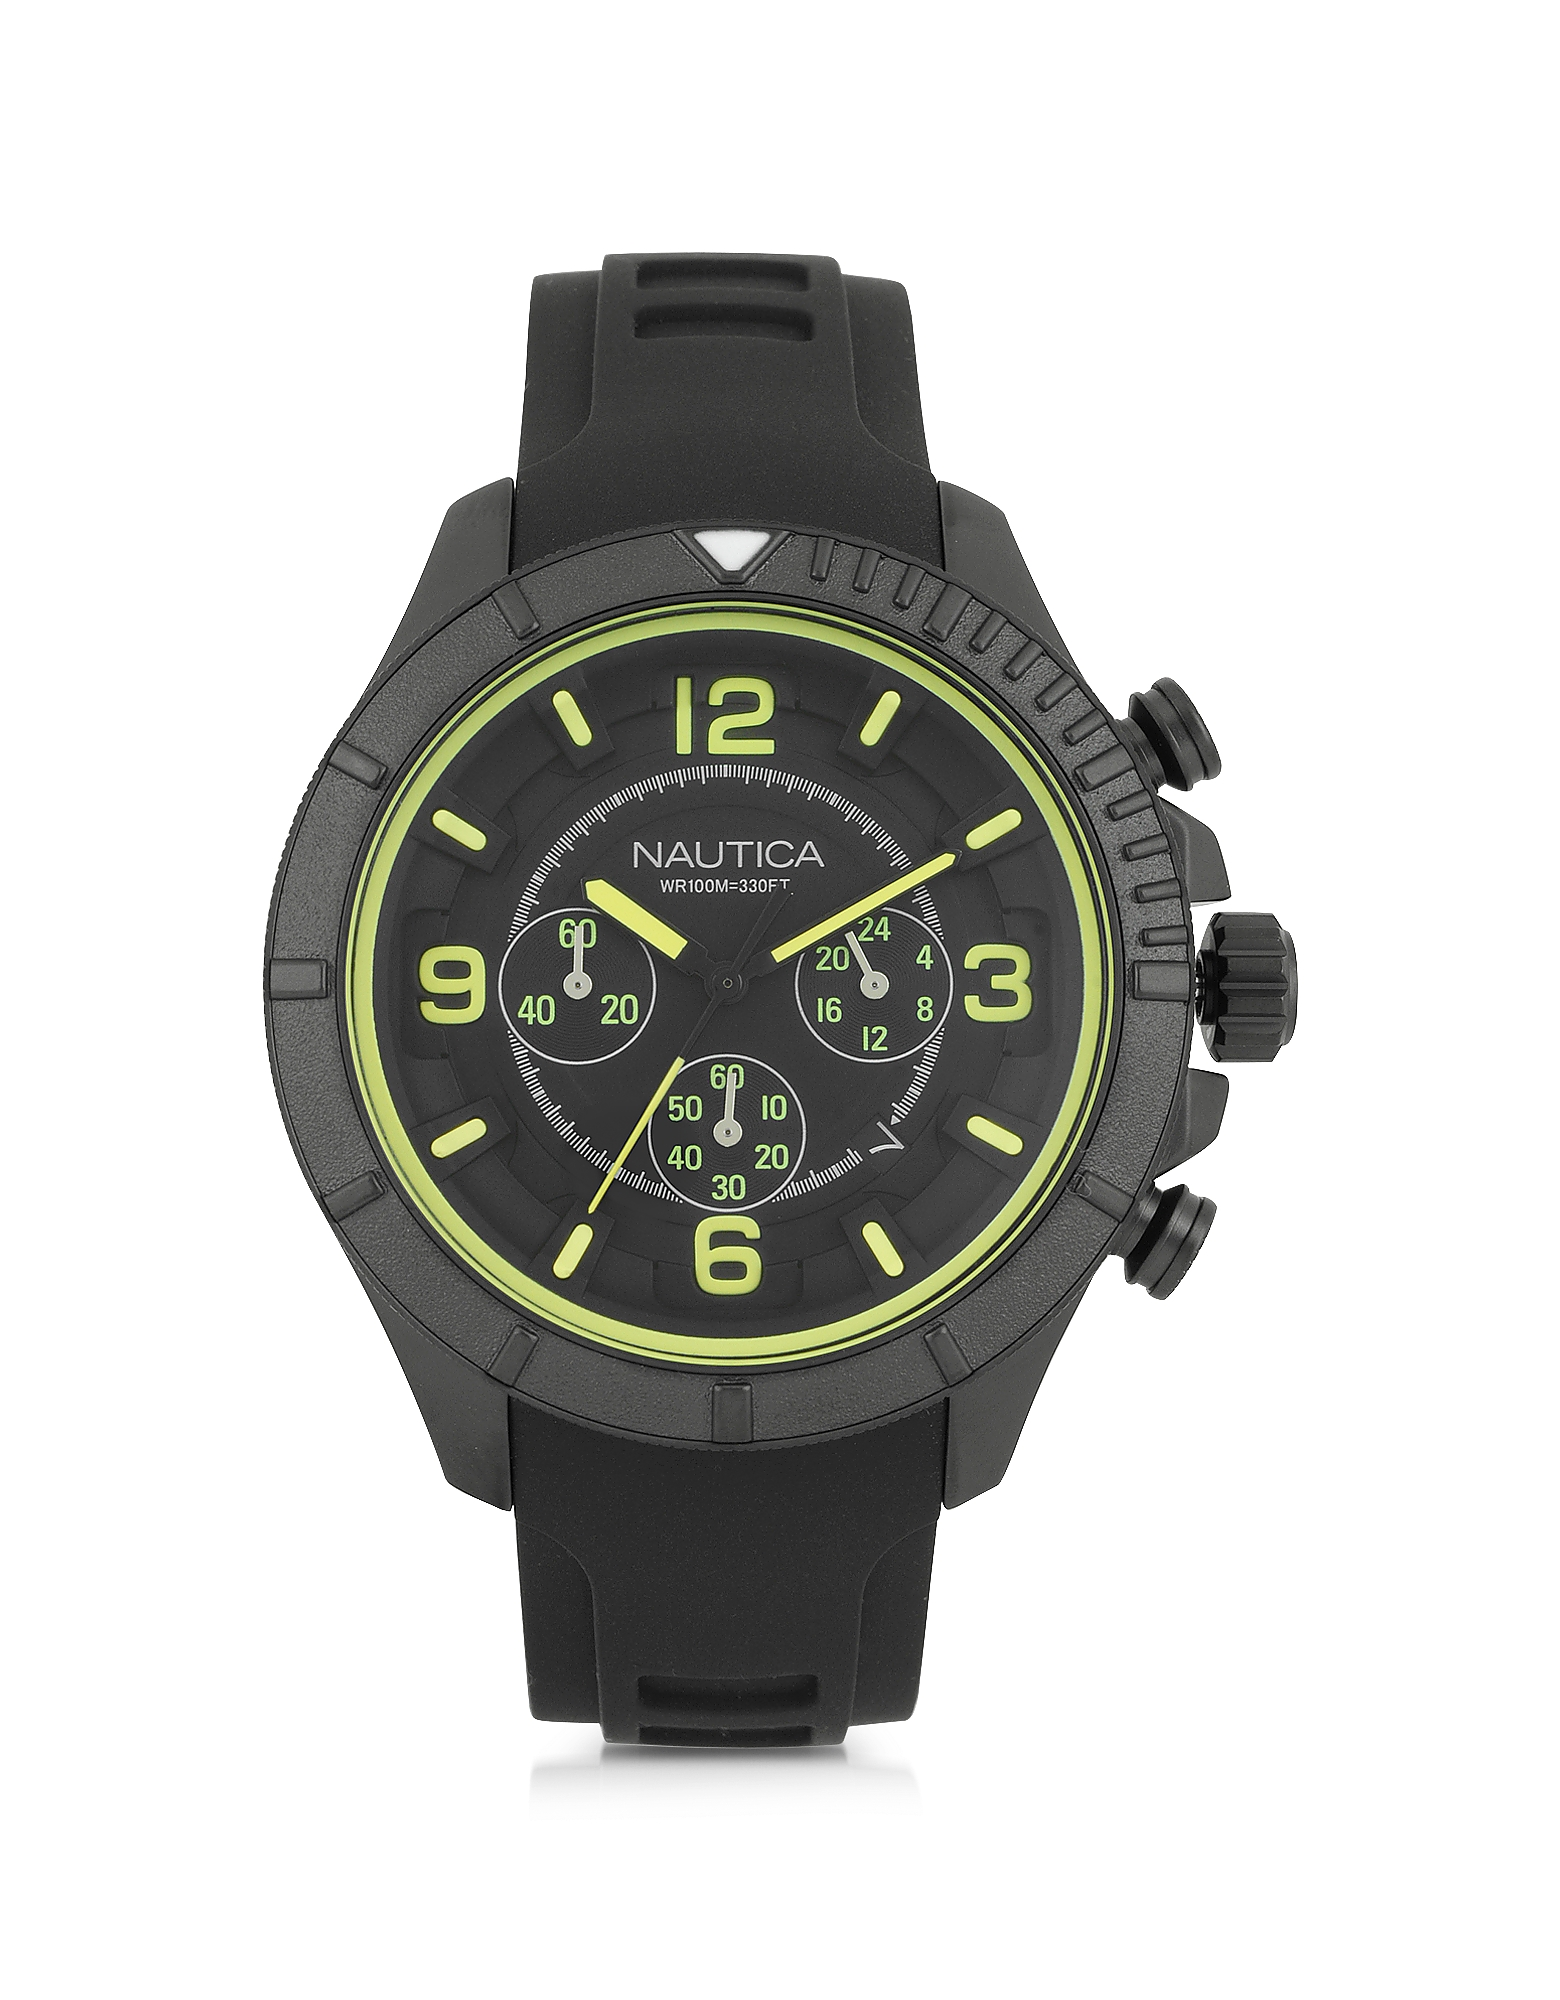 Nautica Men's Watches, Black Stainless Steel Case and Rubber Strap Men's Watch